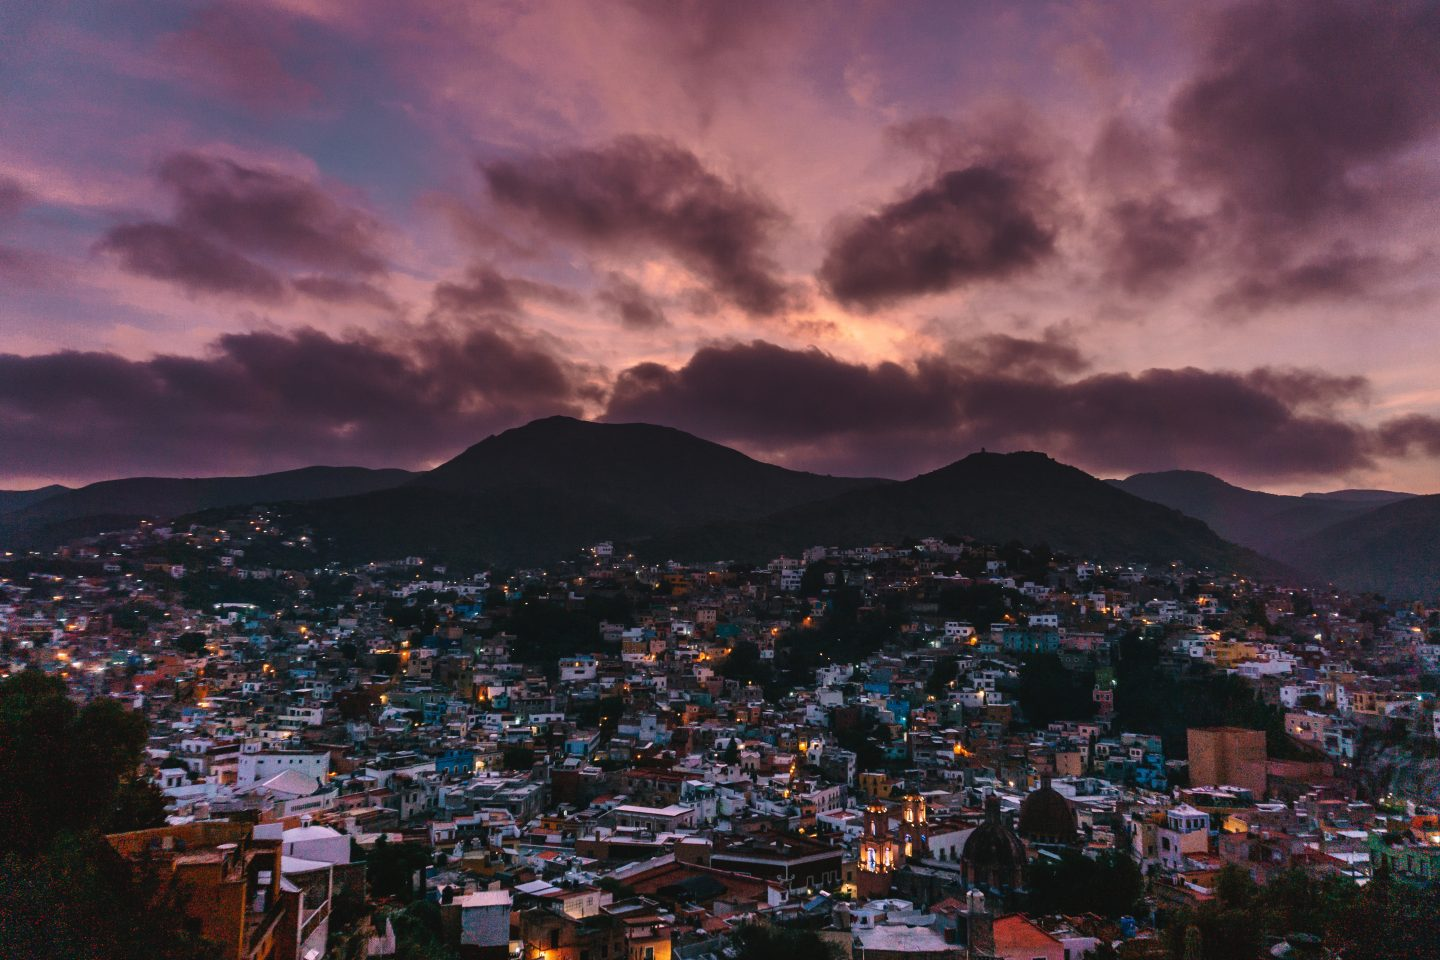 Sunrise over Guanajuato City, Mexico